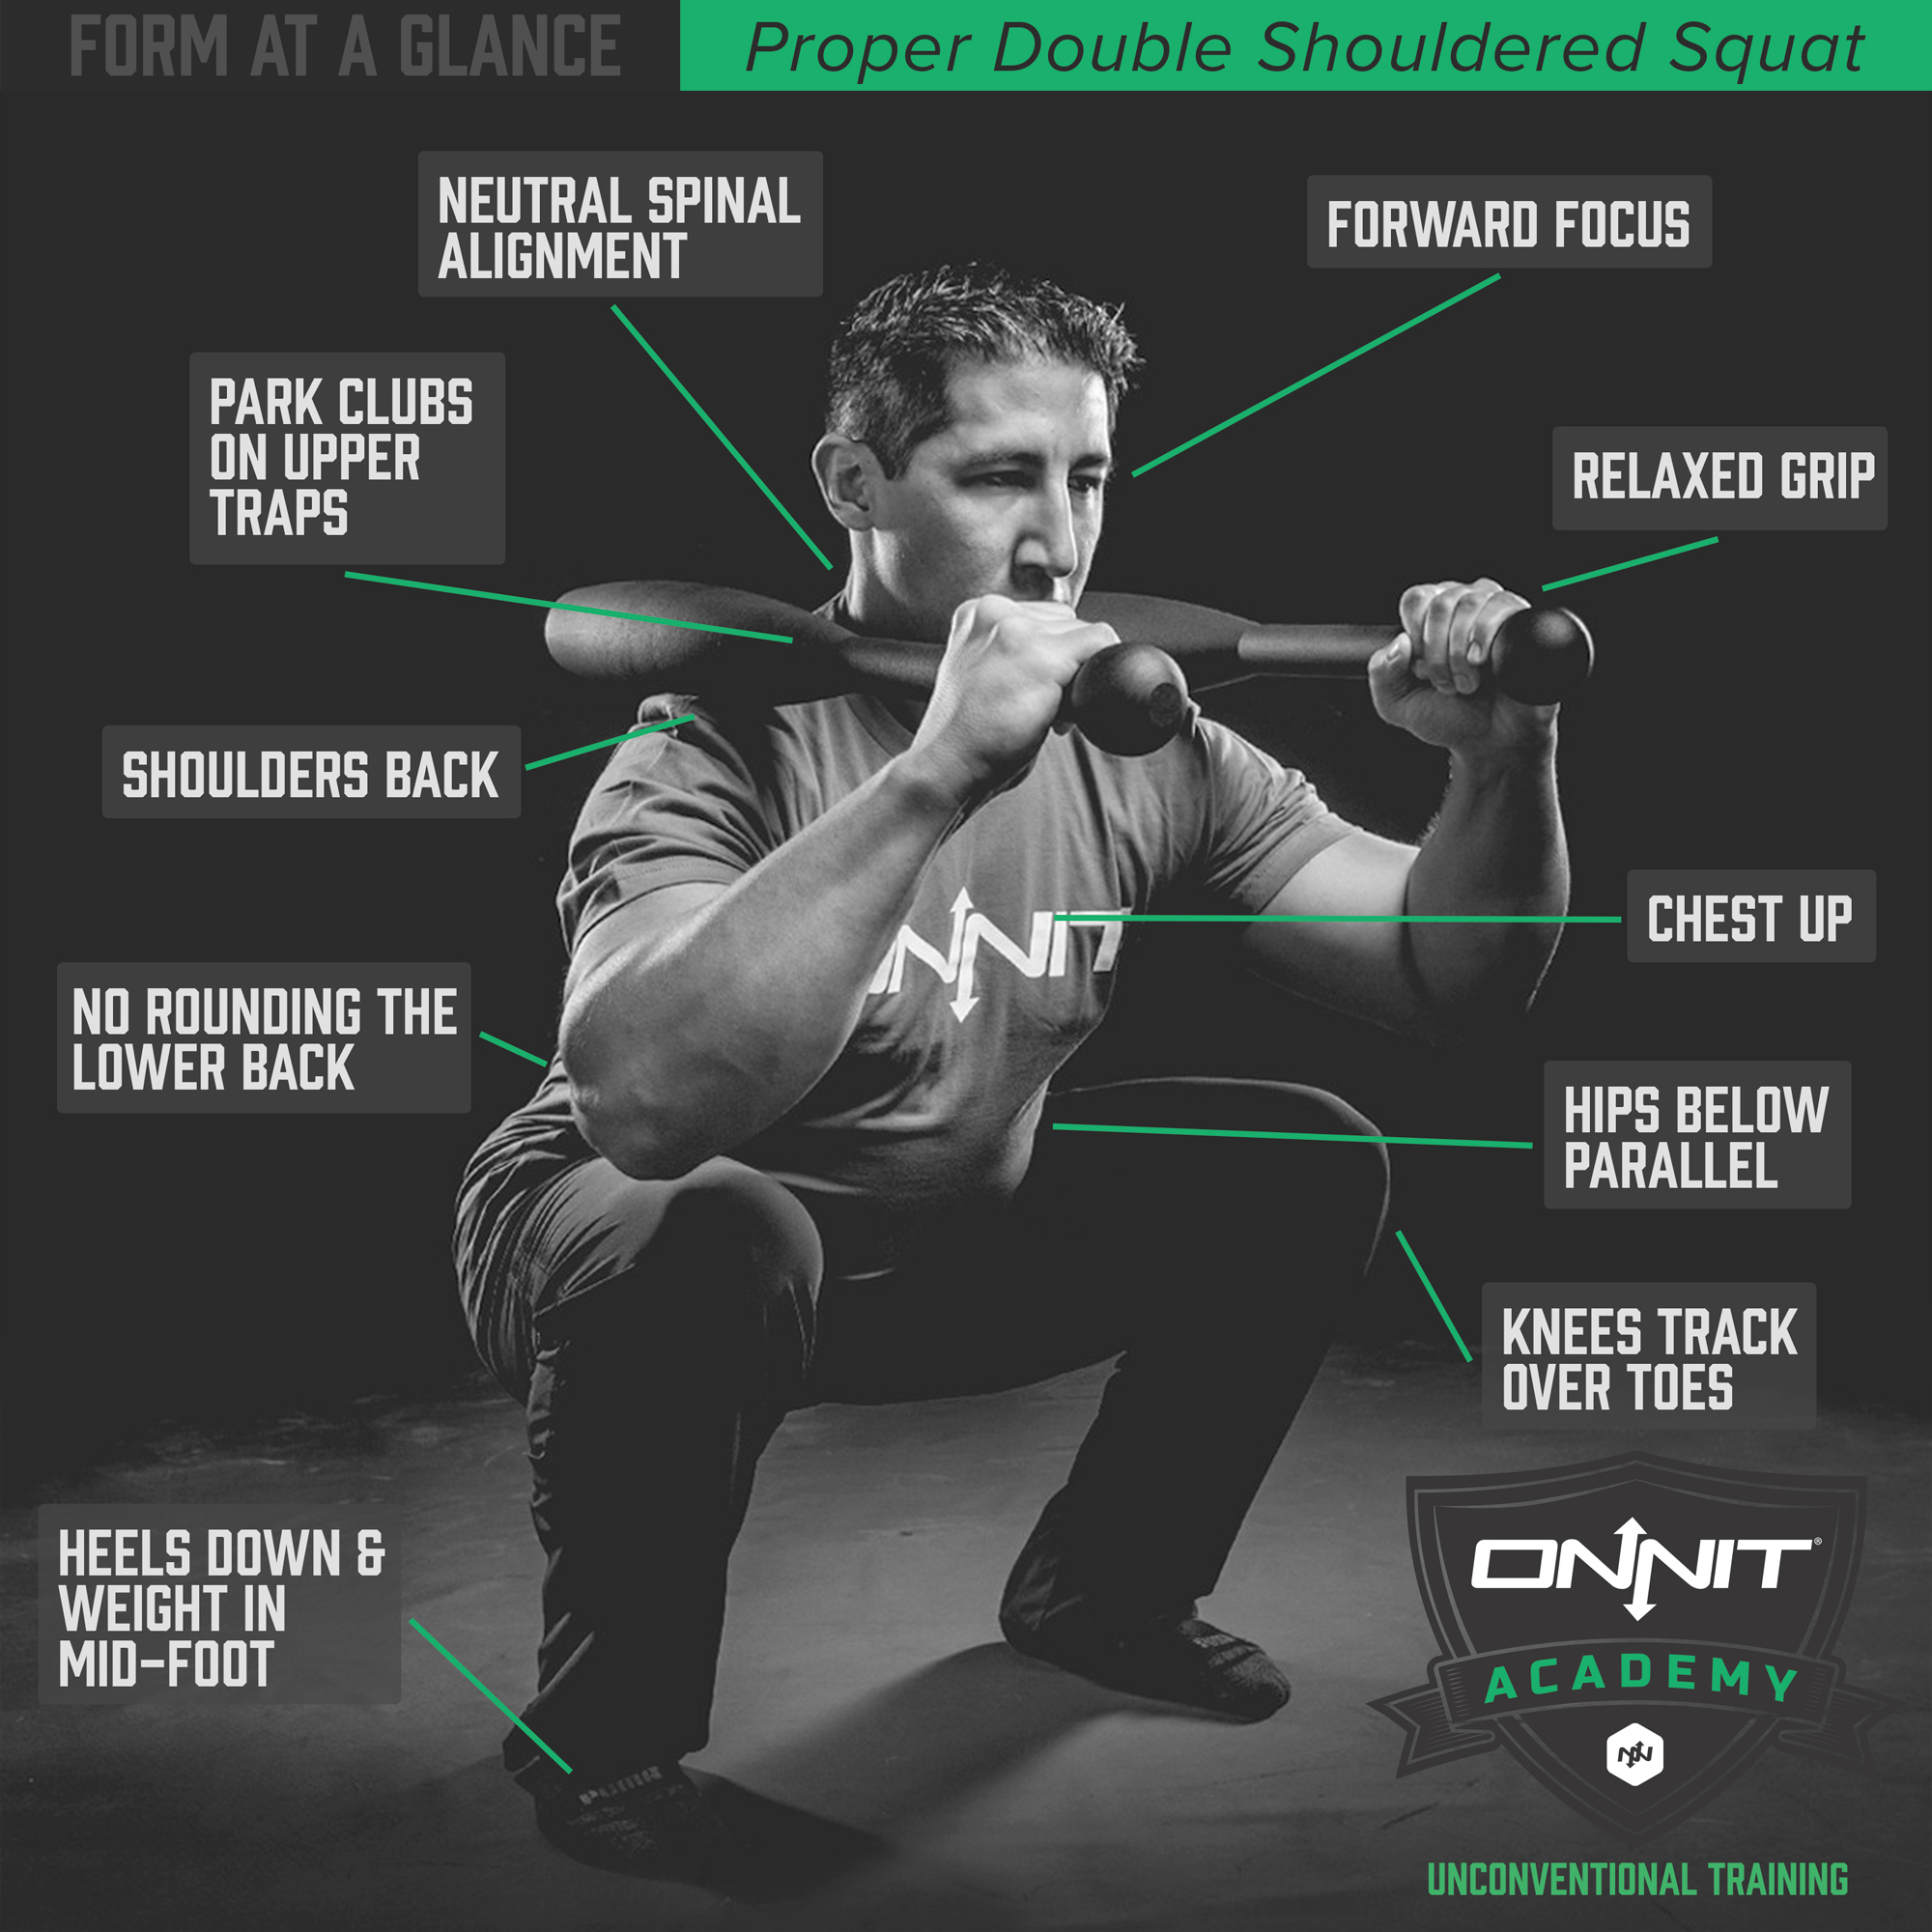 Form At A Glance Kettlebell Windmill: Form At A Glance: Double Steel Club Shouldered Squat